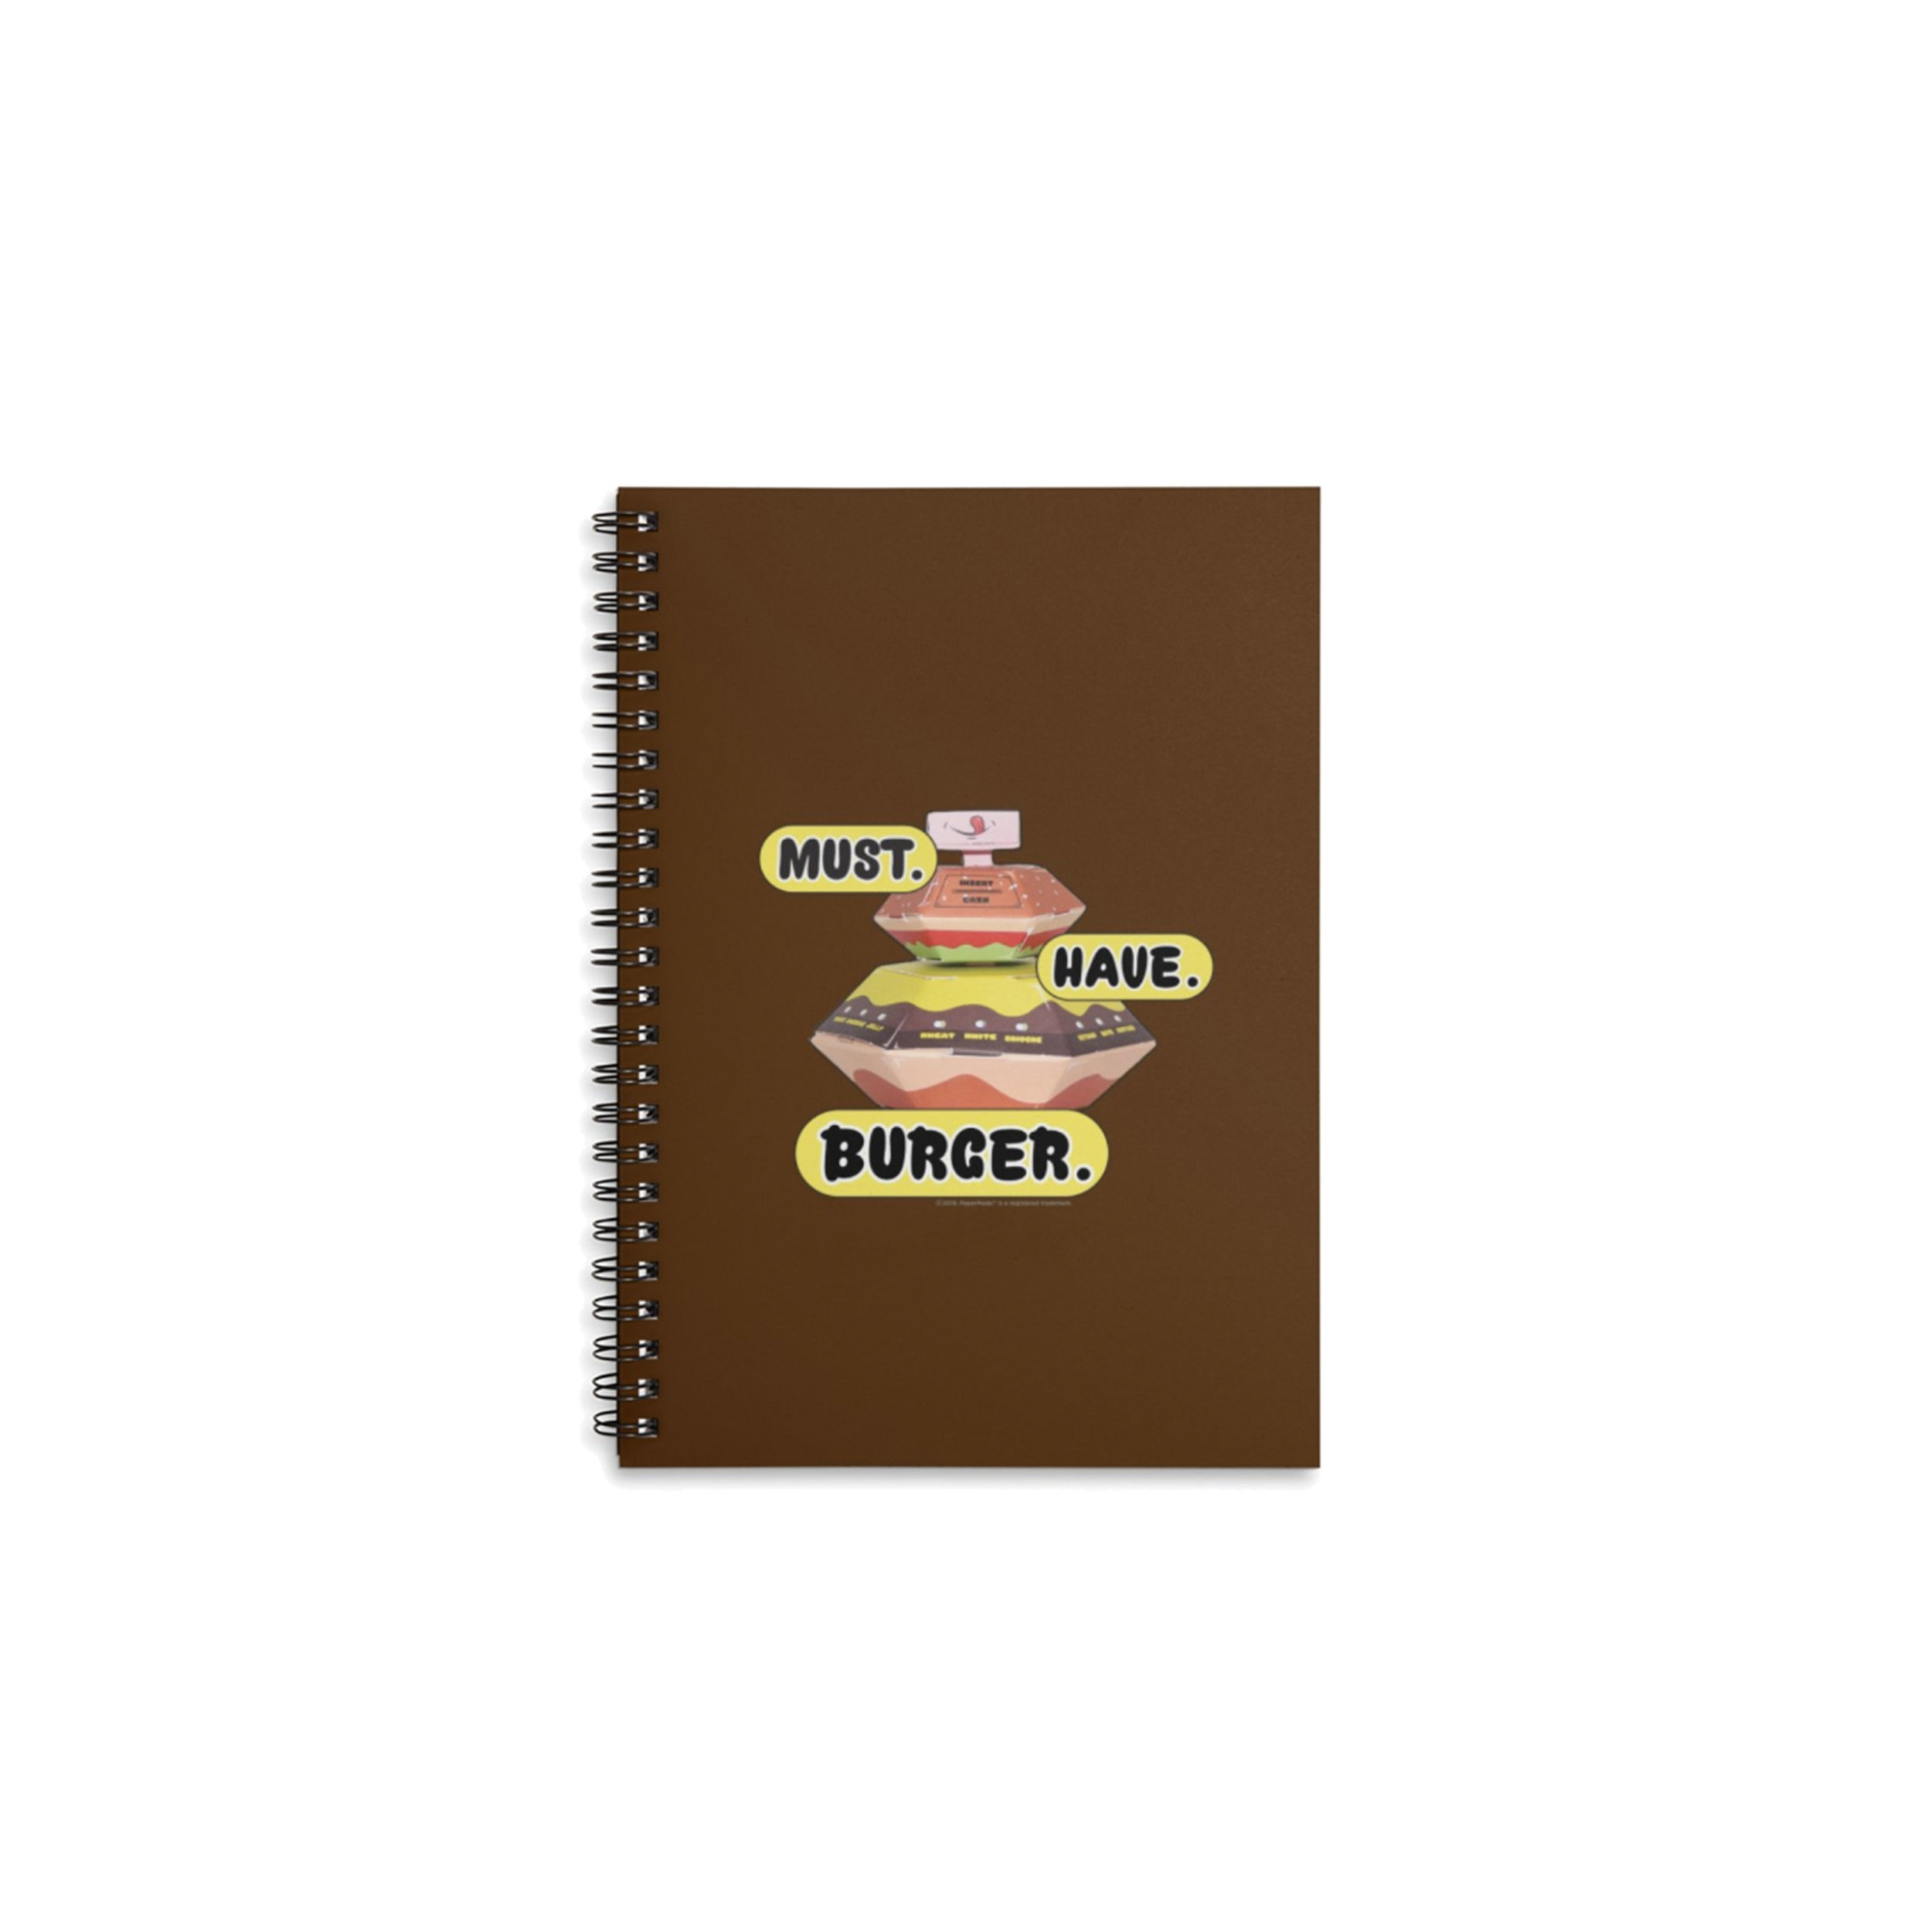 _0000_MustHaveBurger_Notebook_Spiral.jpg